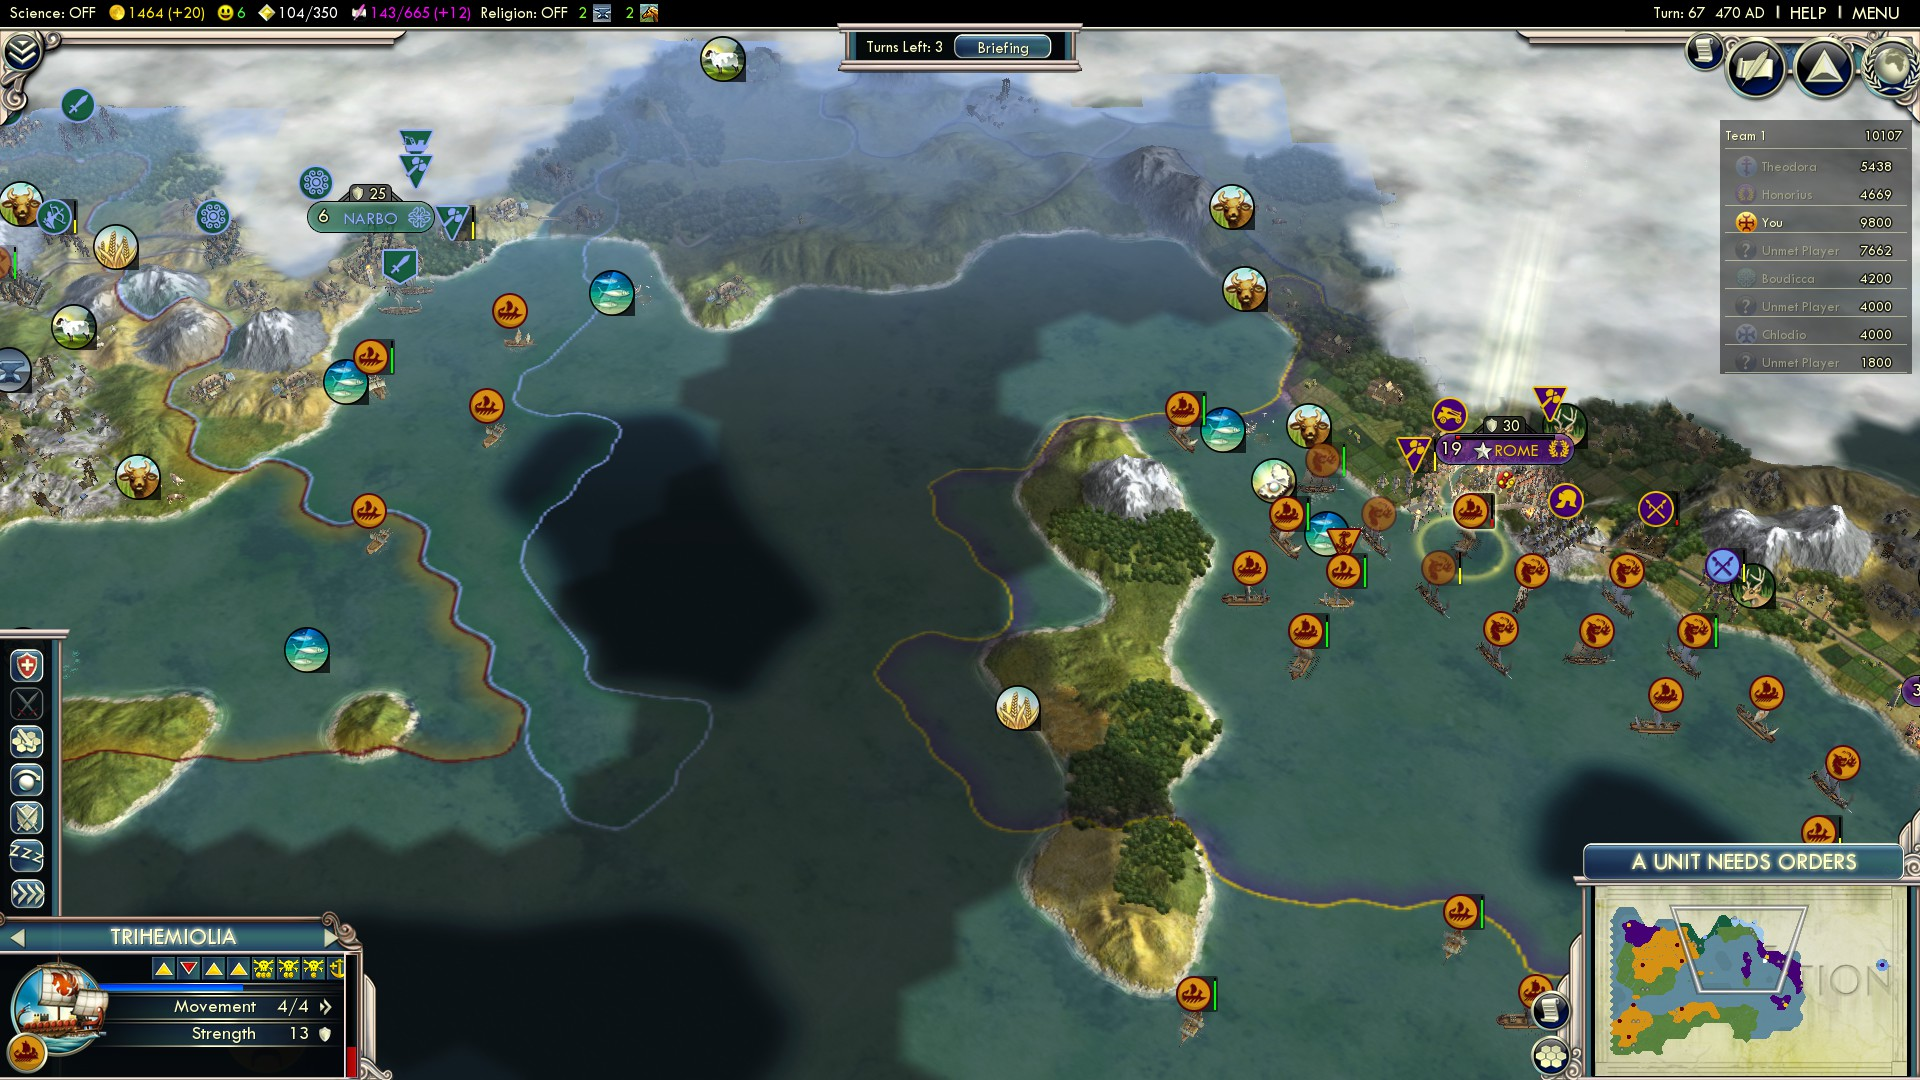 Civilization 5 Fall of Rome Vandals Deity - I Sunk Your Imperial Capital! Steam Achievement